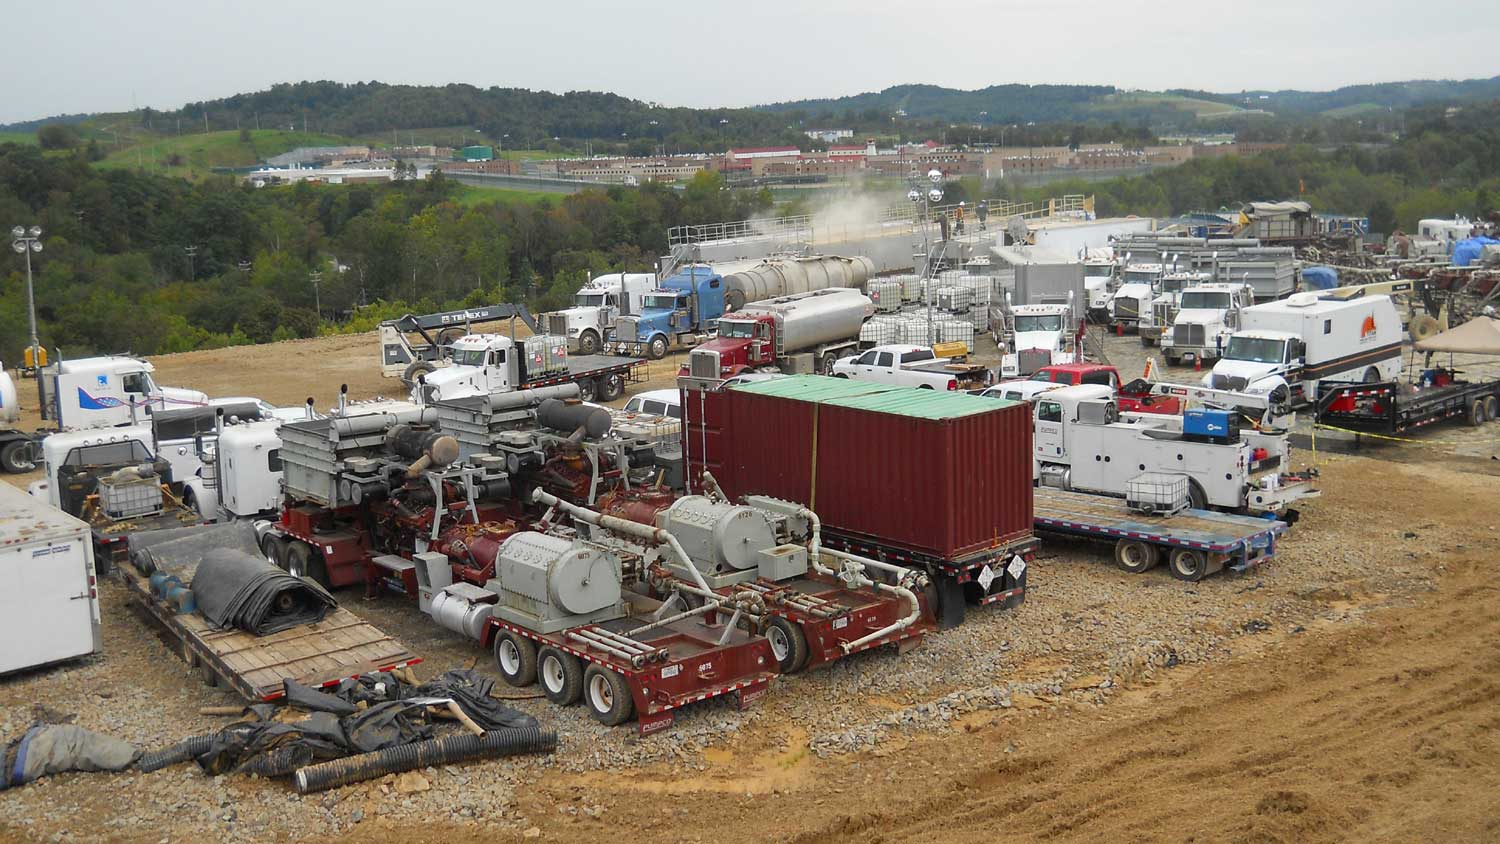 Natural gas production in Pennsylvania's Marcellus Shale is tied to increased asthma attacks